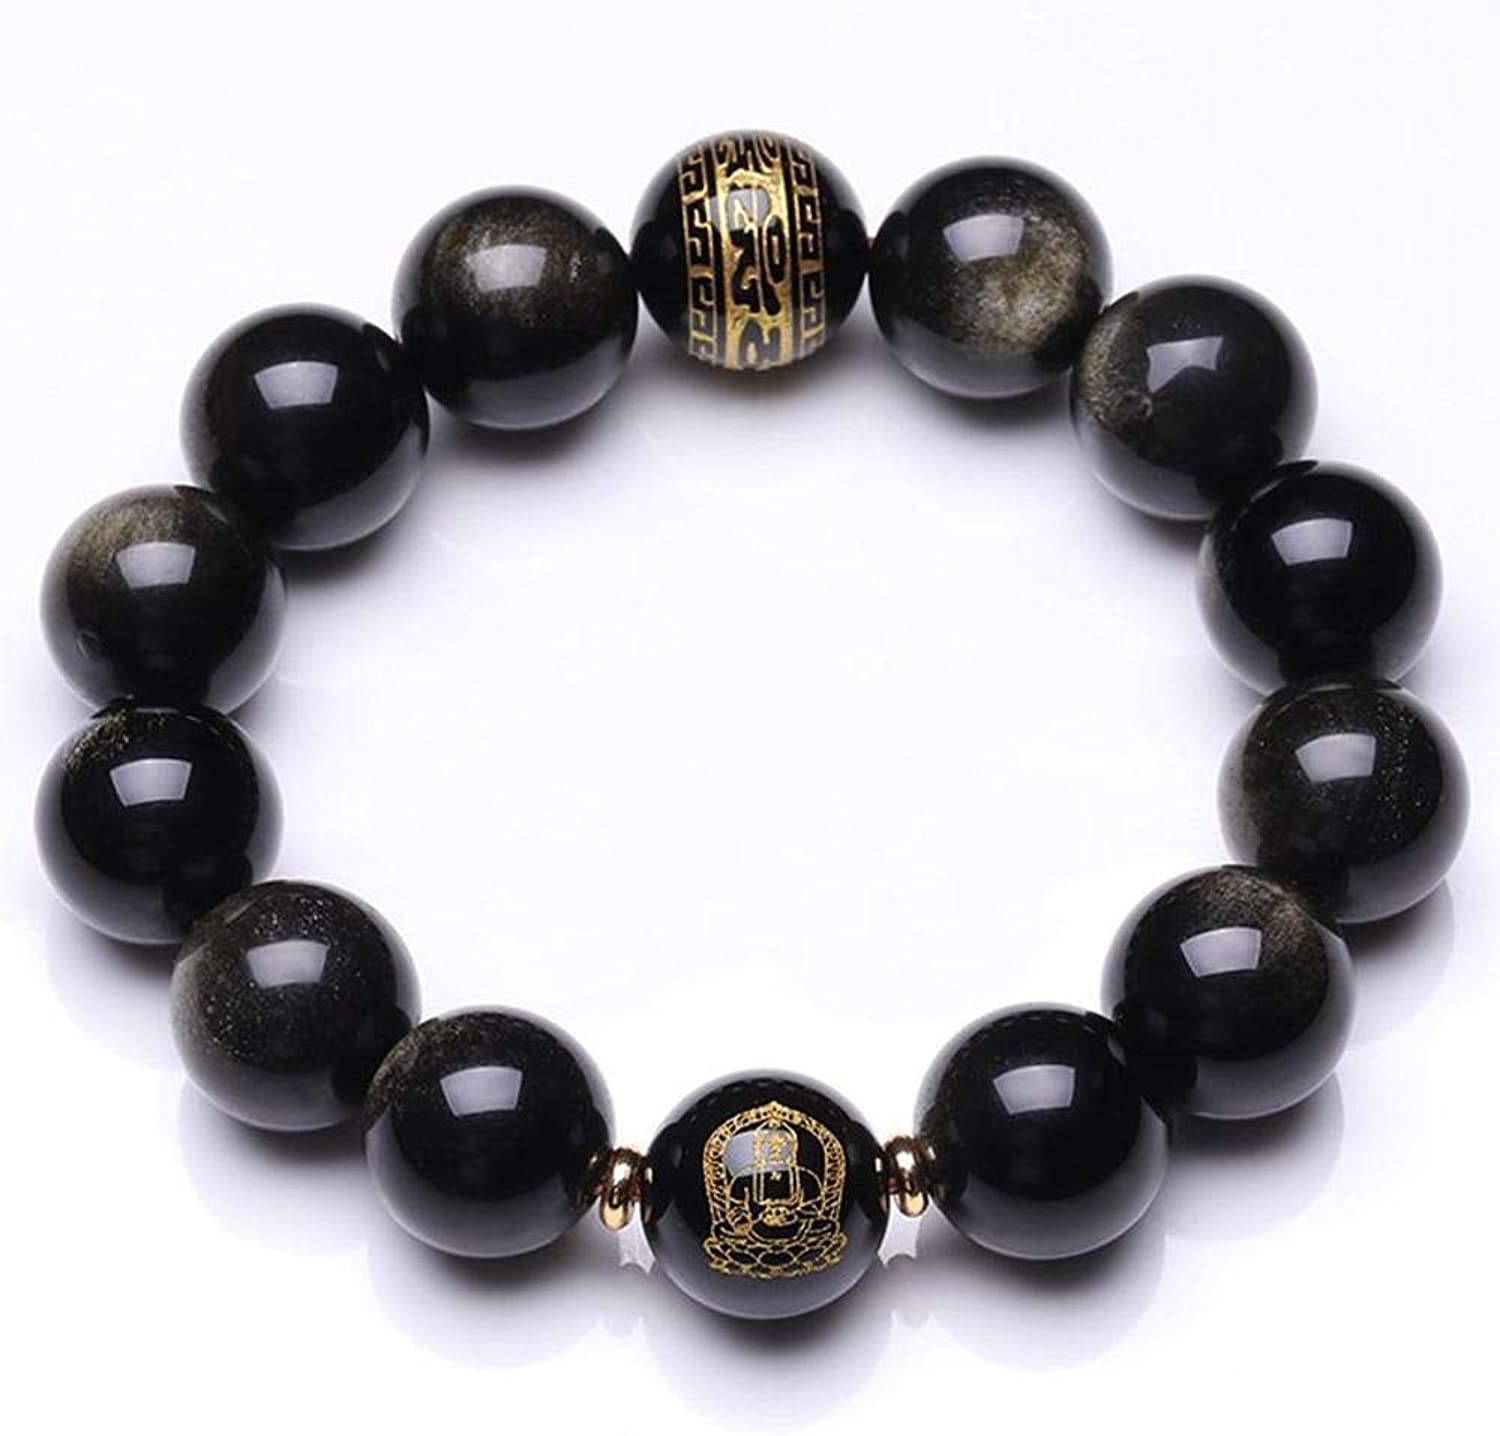 Zicue Stylish Charming Bracelet Exquisite Ornaments Natural Kim Yao bracelet for men and women gifts ( Size   10MM )